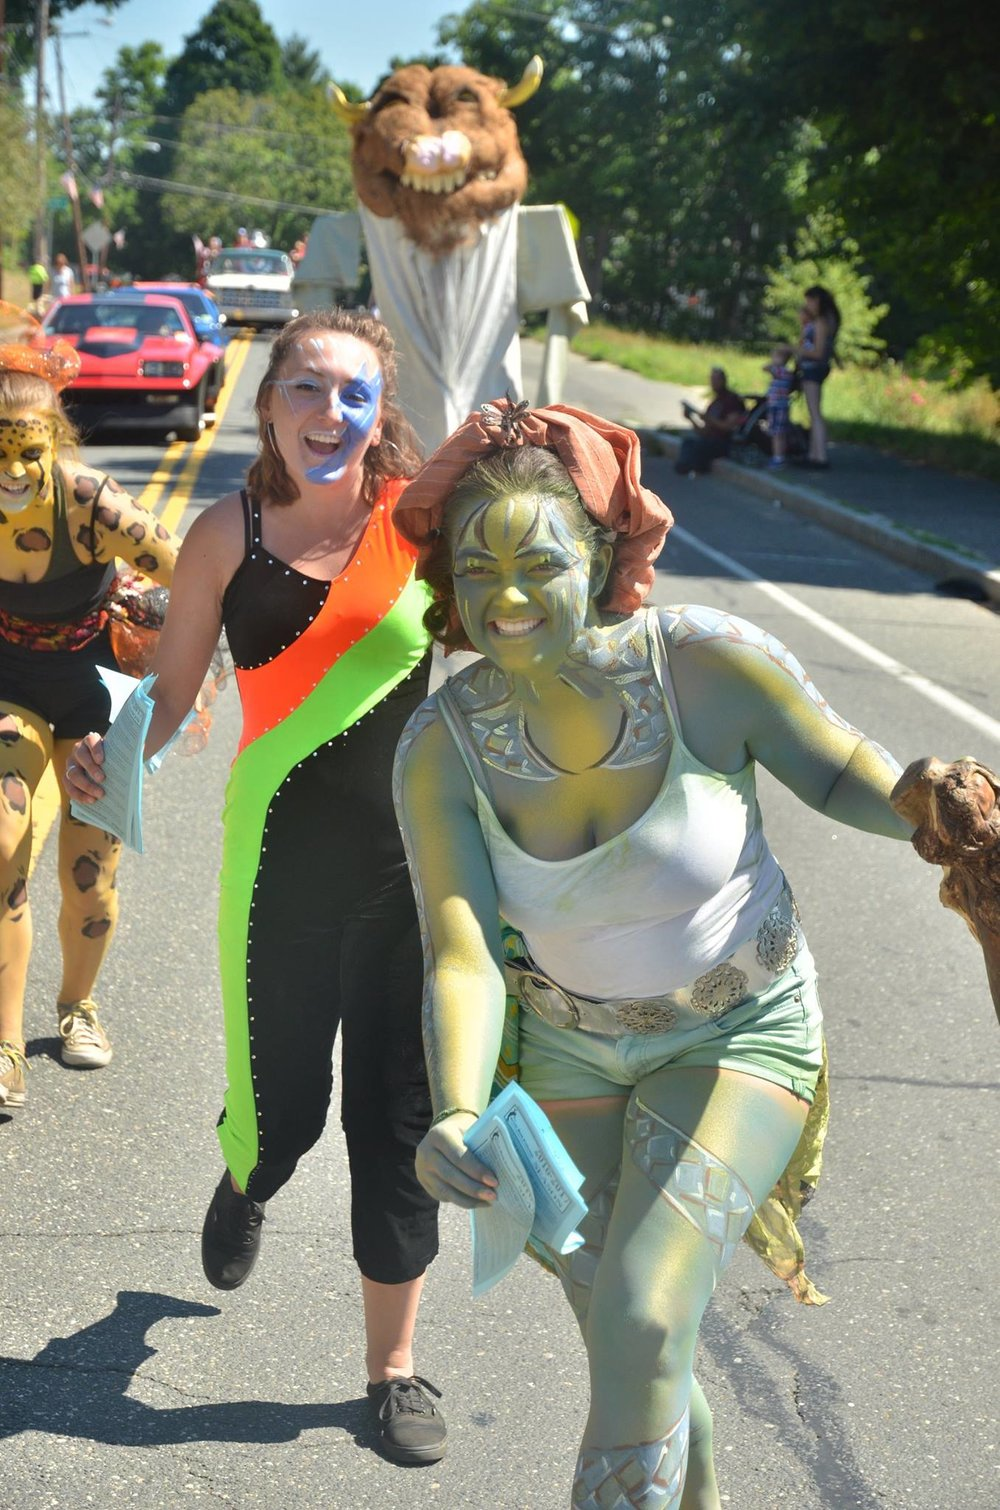 Mariah Waite, Emily Tyburski, and Holly Cote, run from the Wild Things at Summerfest!